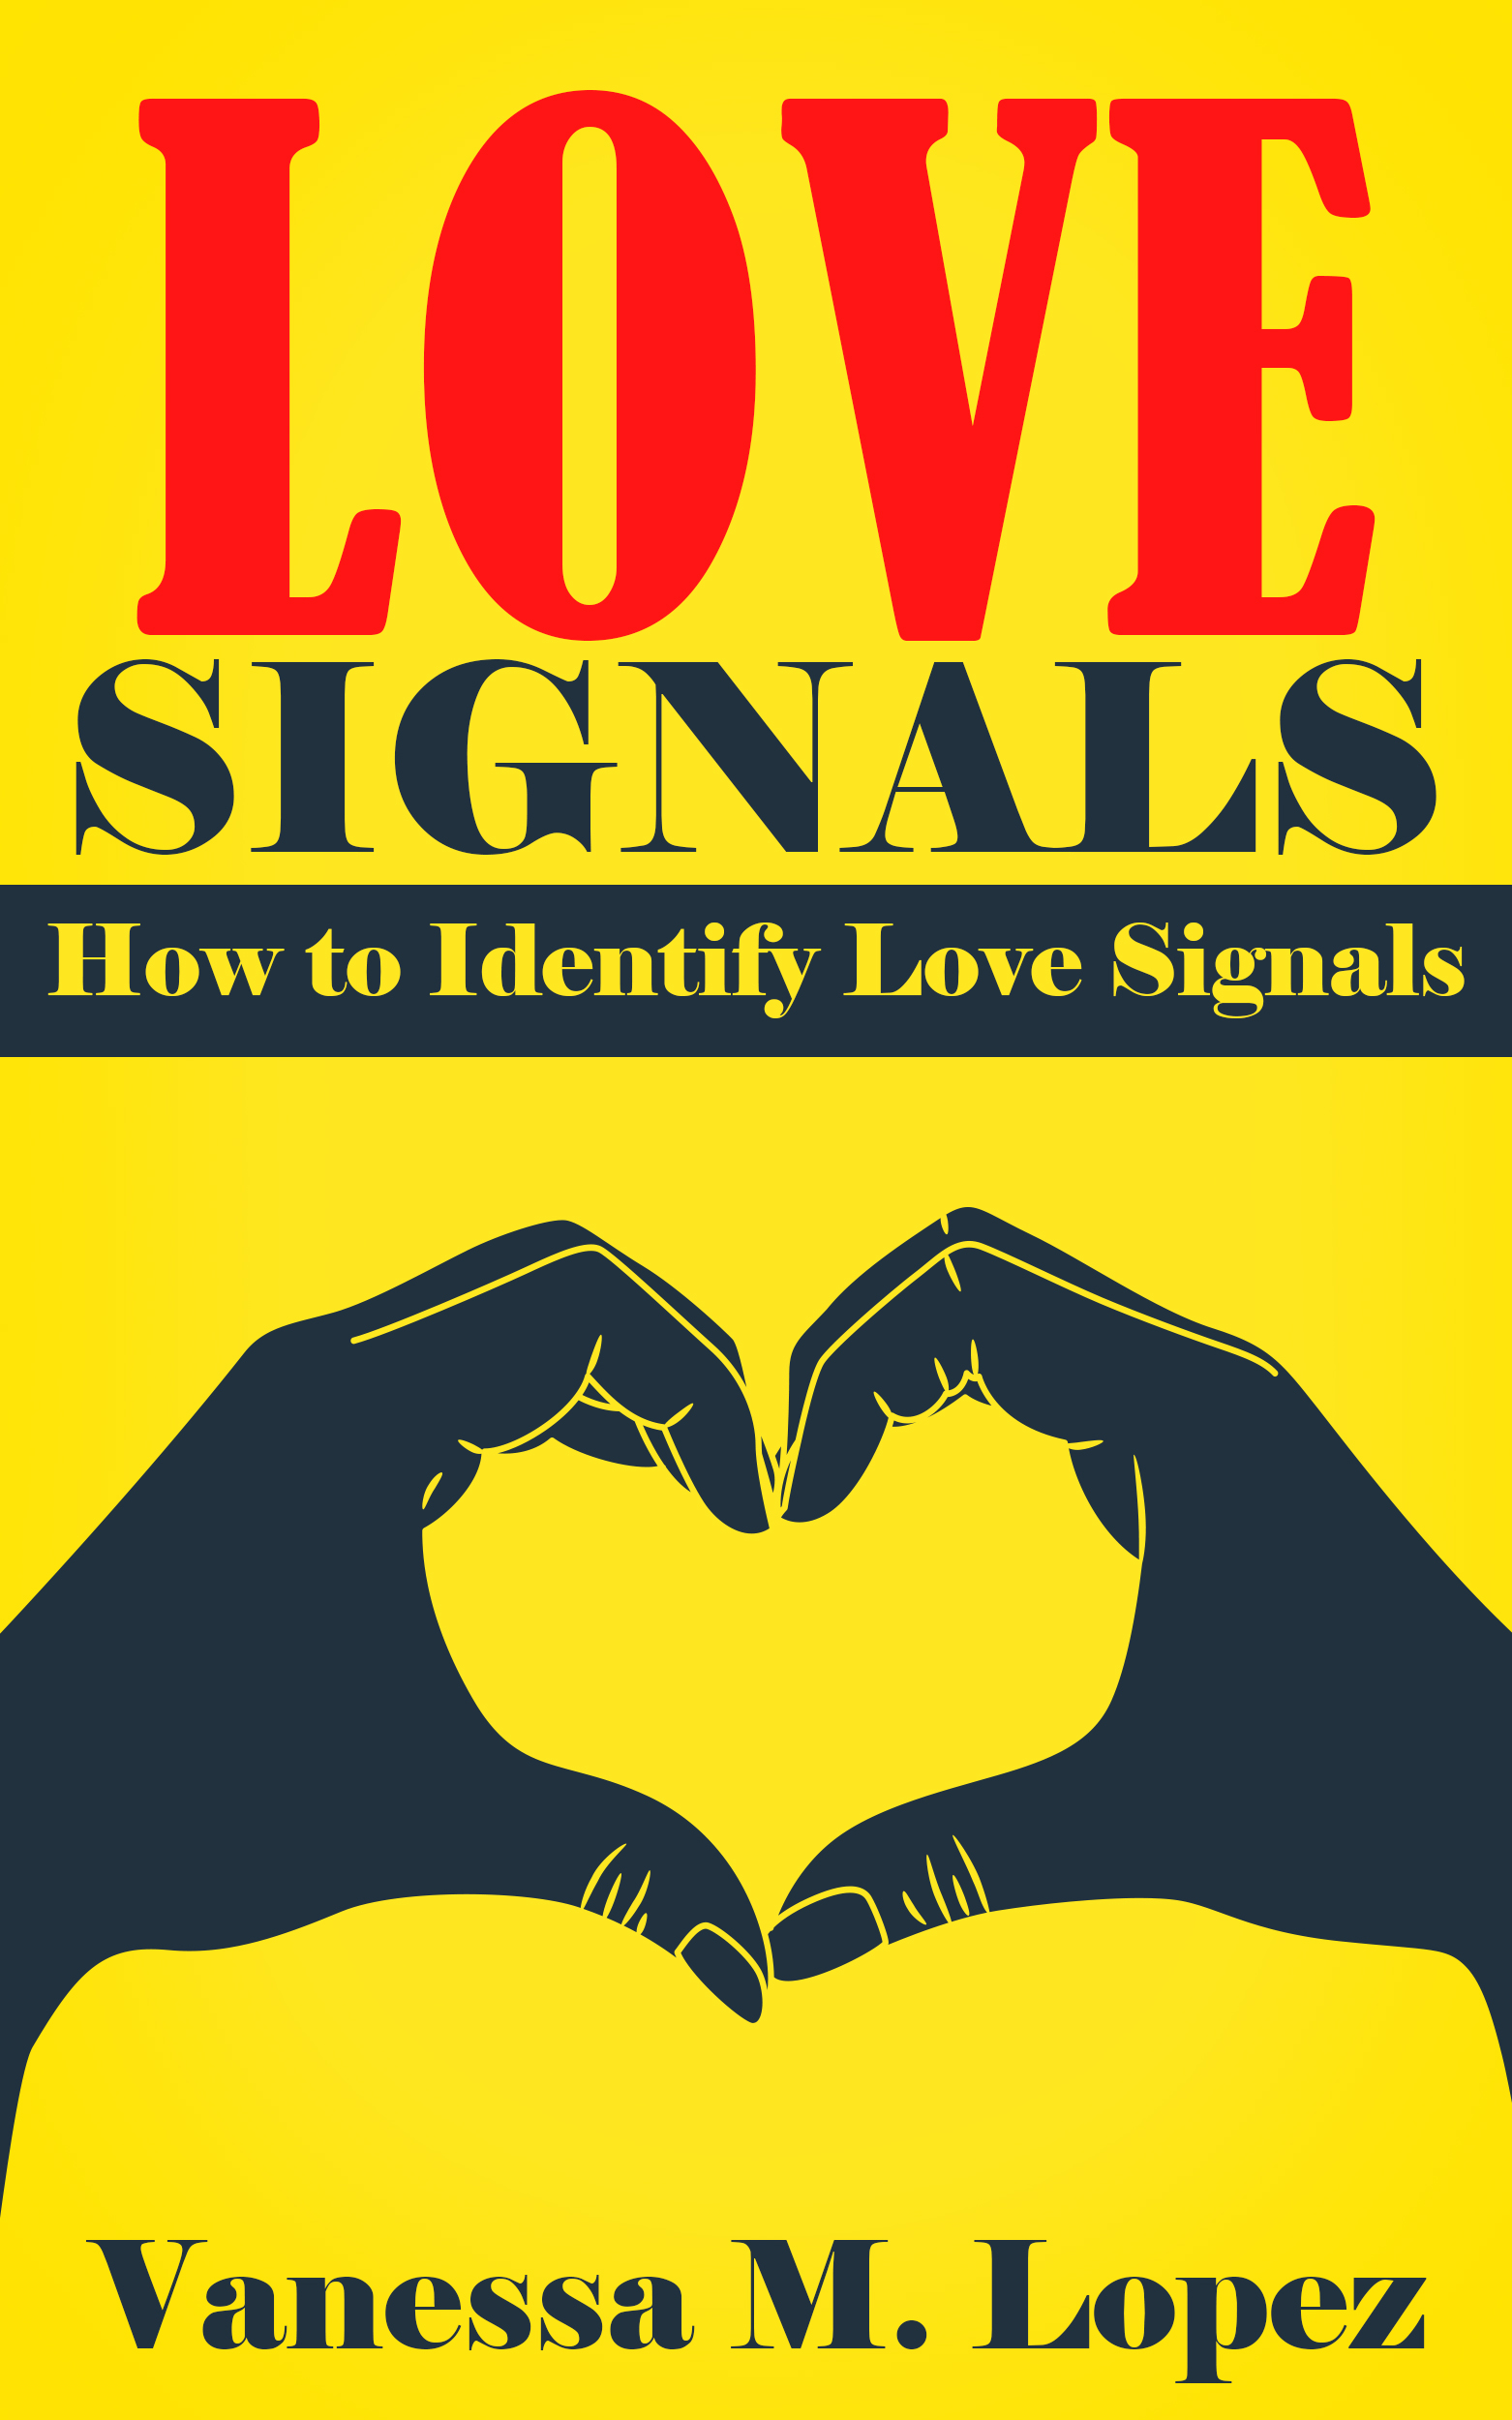 Love signals: how to identify love signals